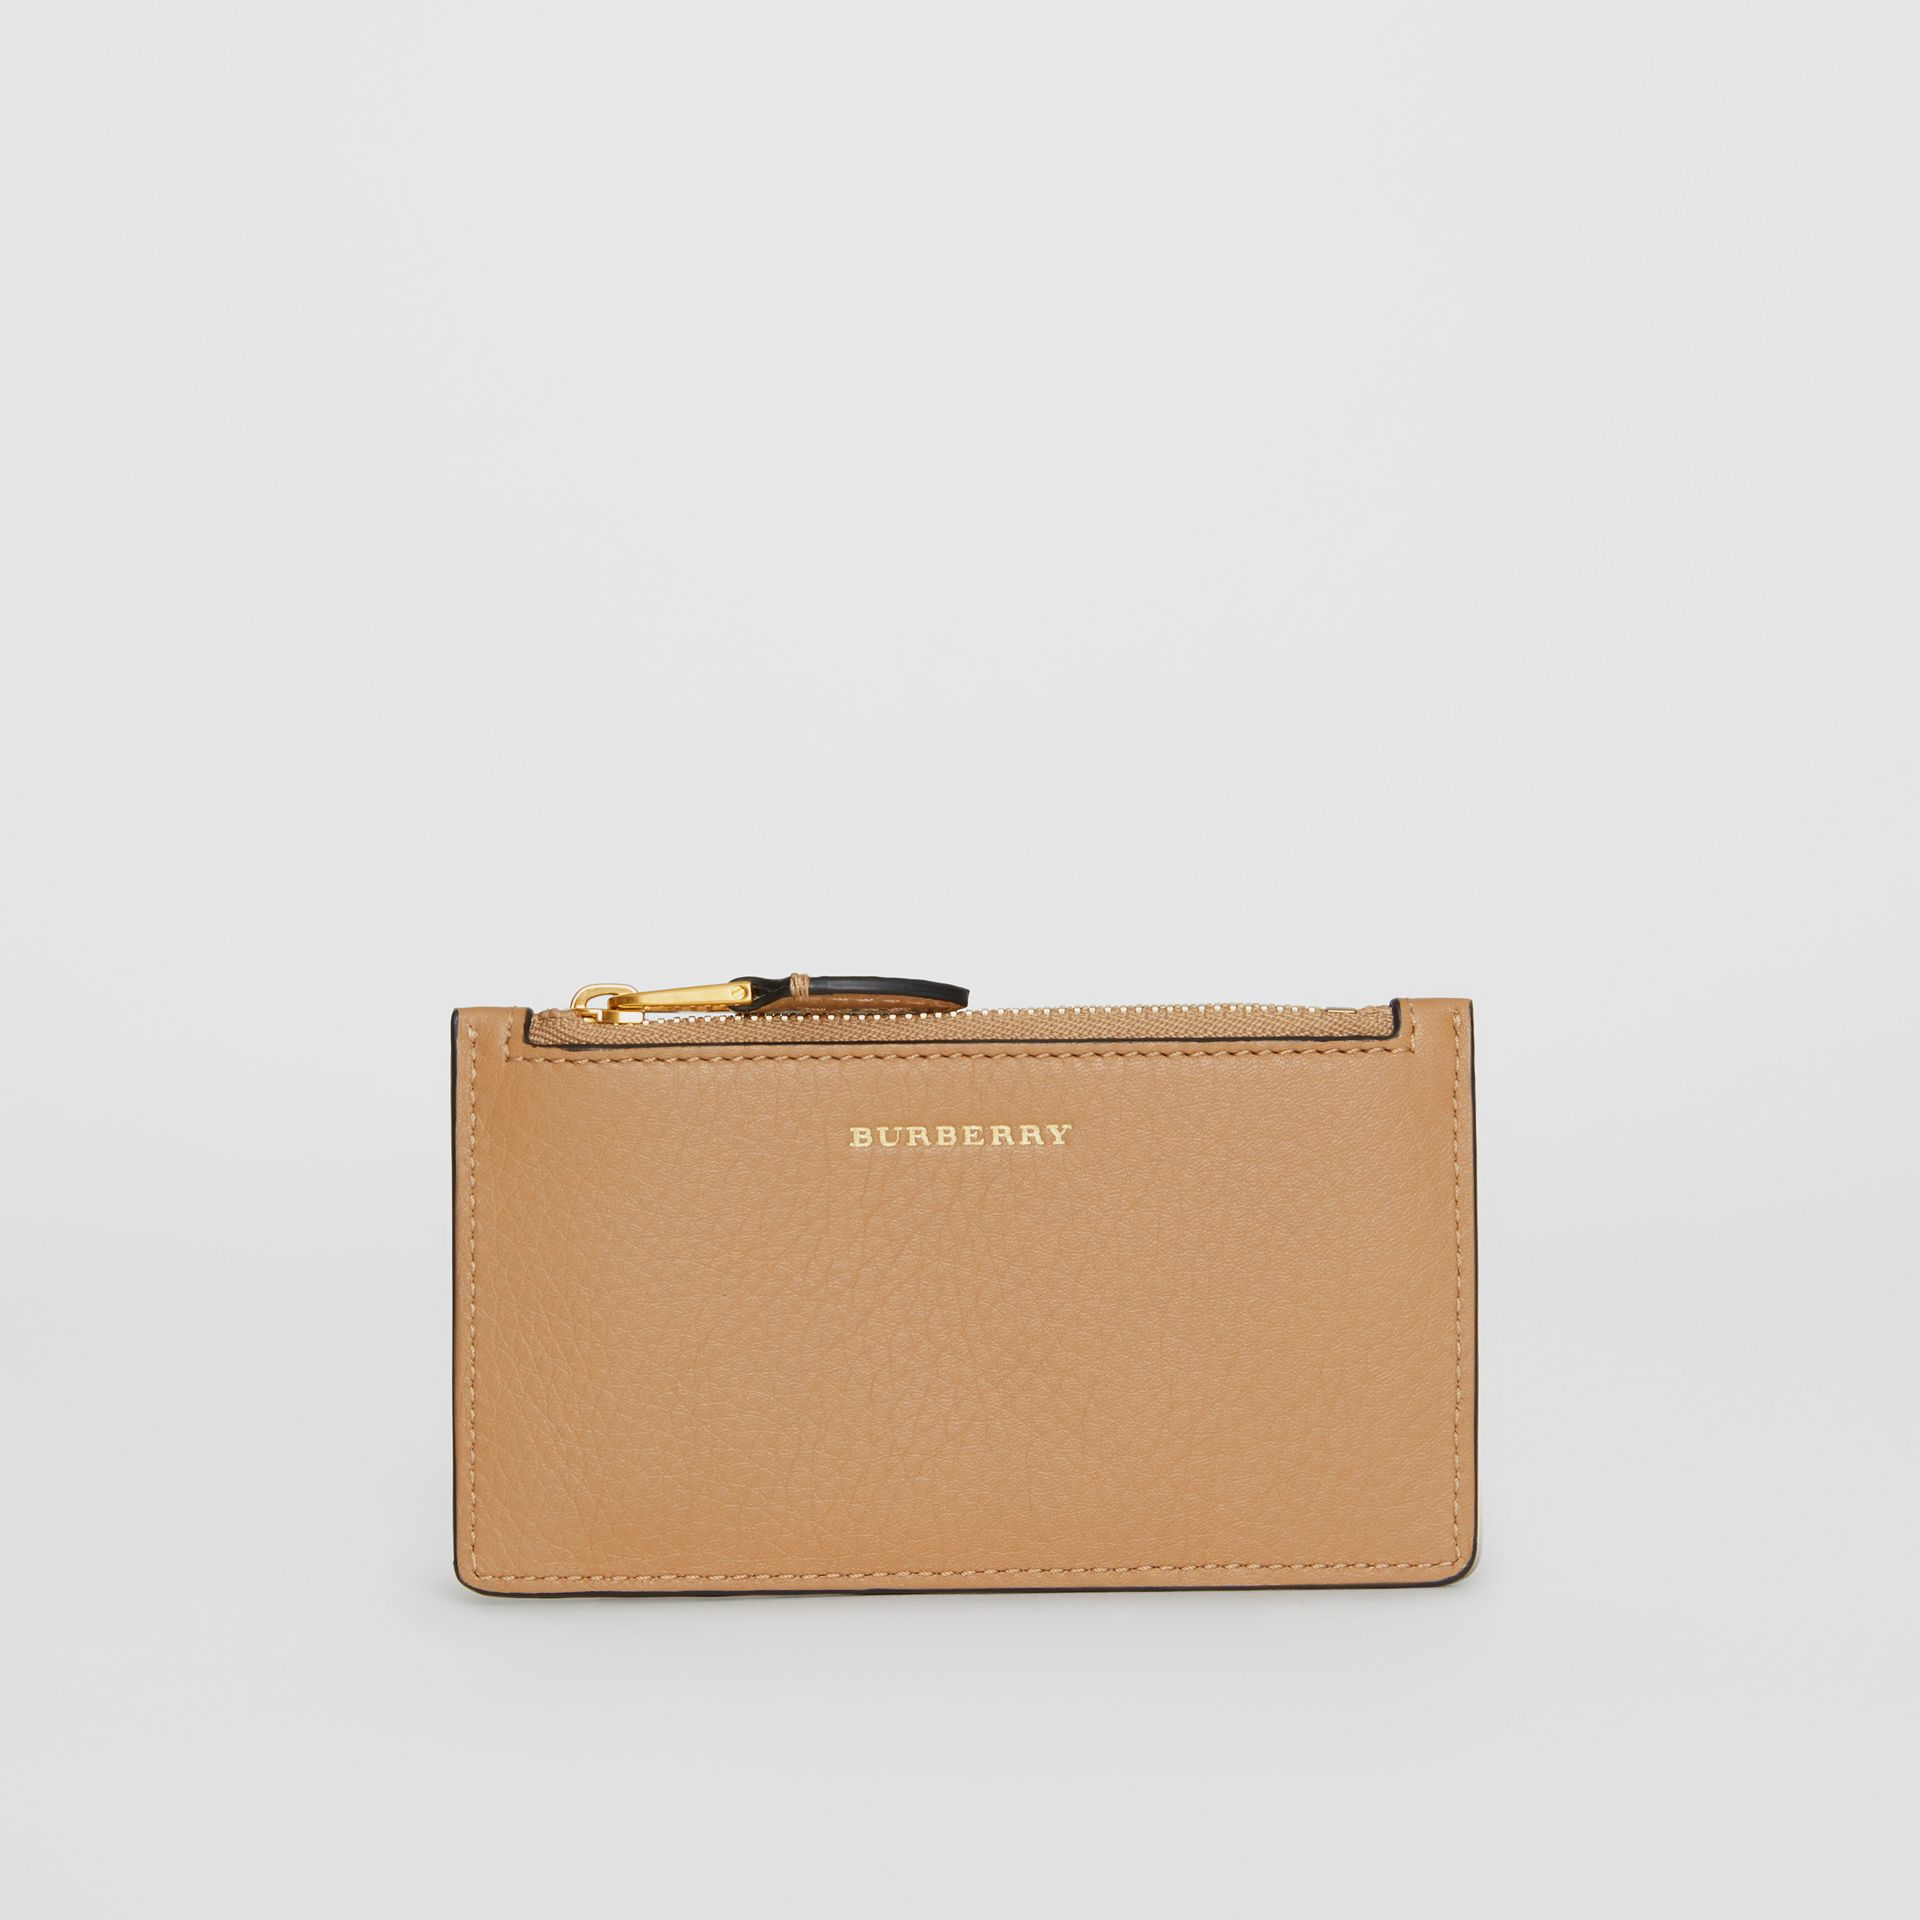 Two-tone Leather Card Case in Light Camel - Women | Burberry United Kingdom - gallery image 2